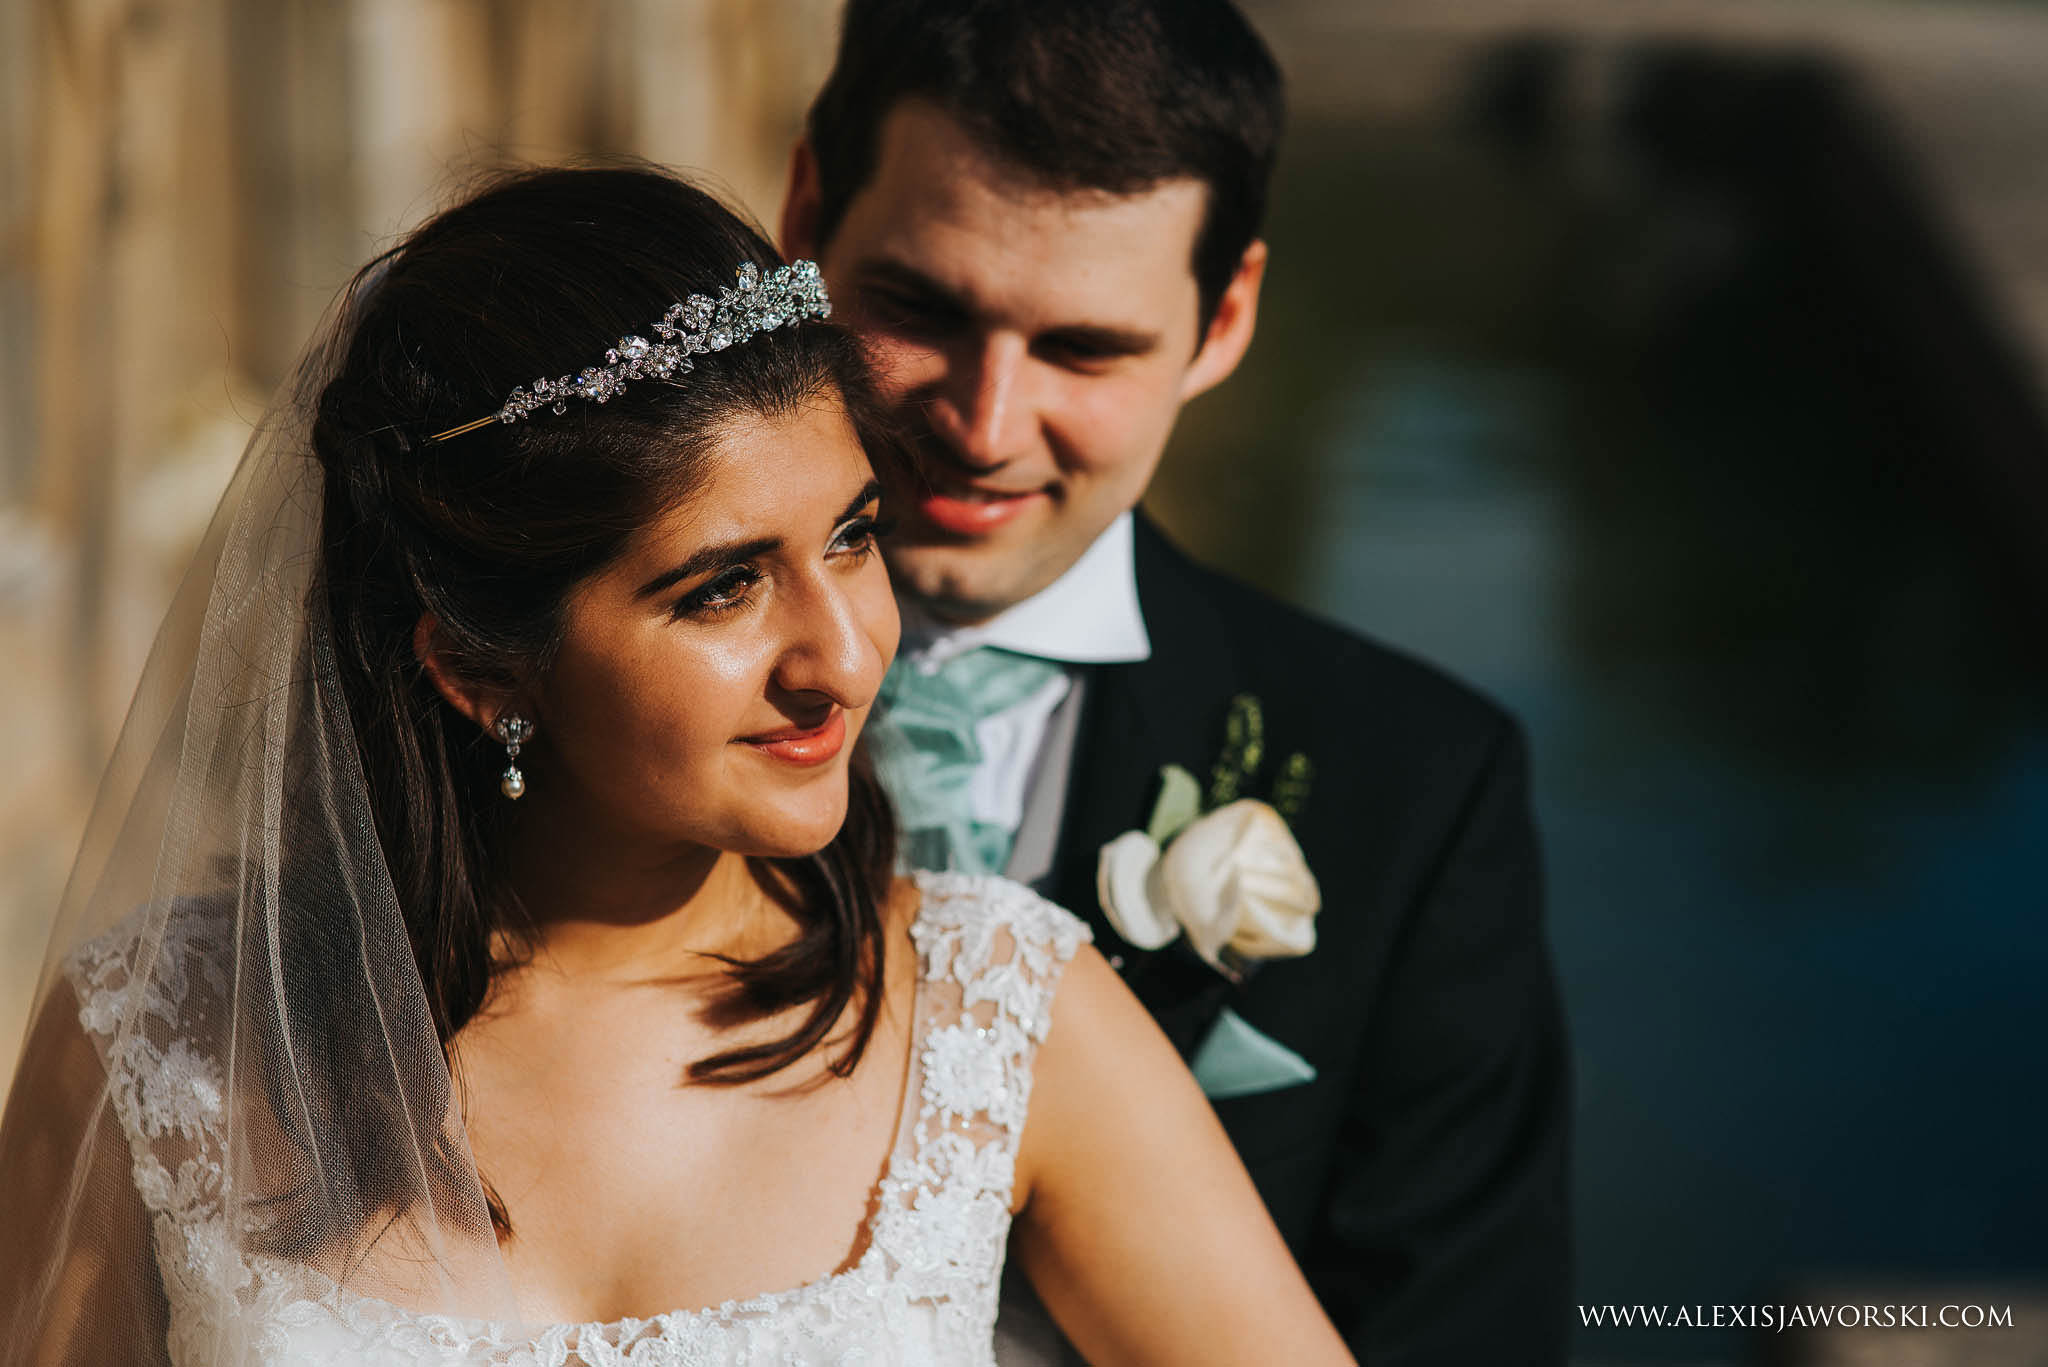 close up portrait of the bride and groom